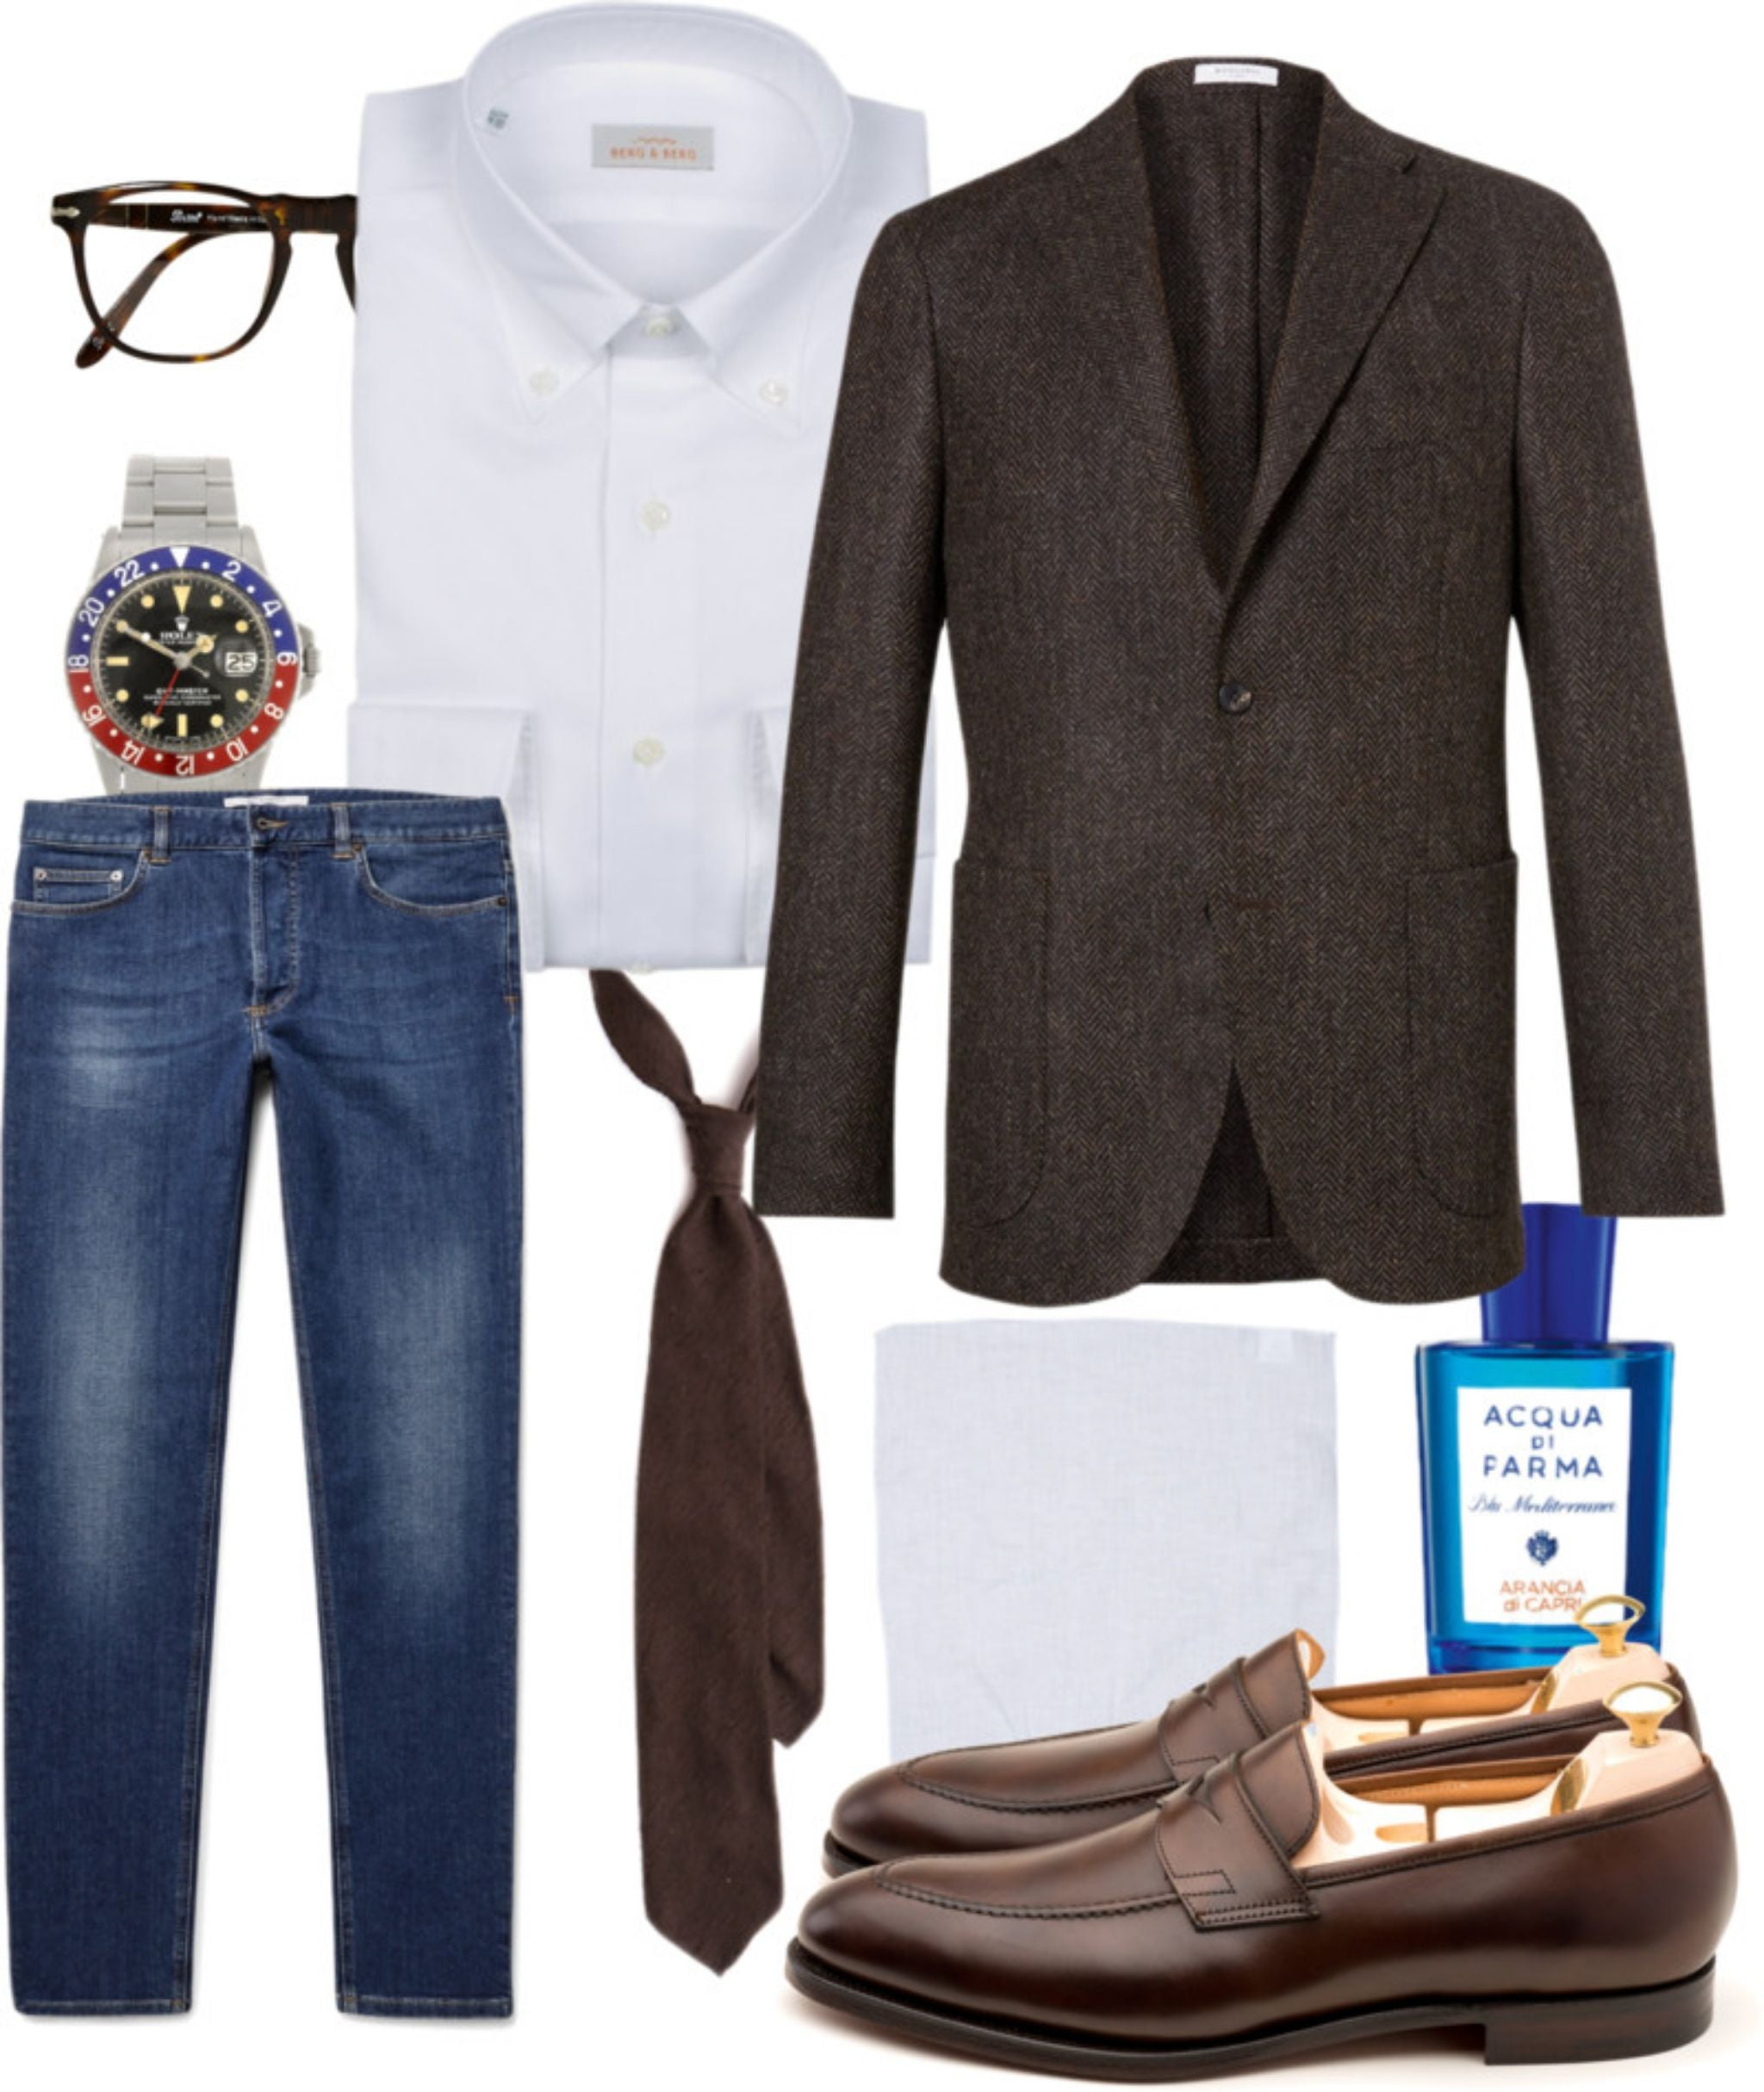 Brown-sport-coat-with-jeans-and-loafers